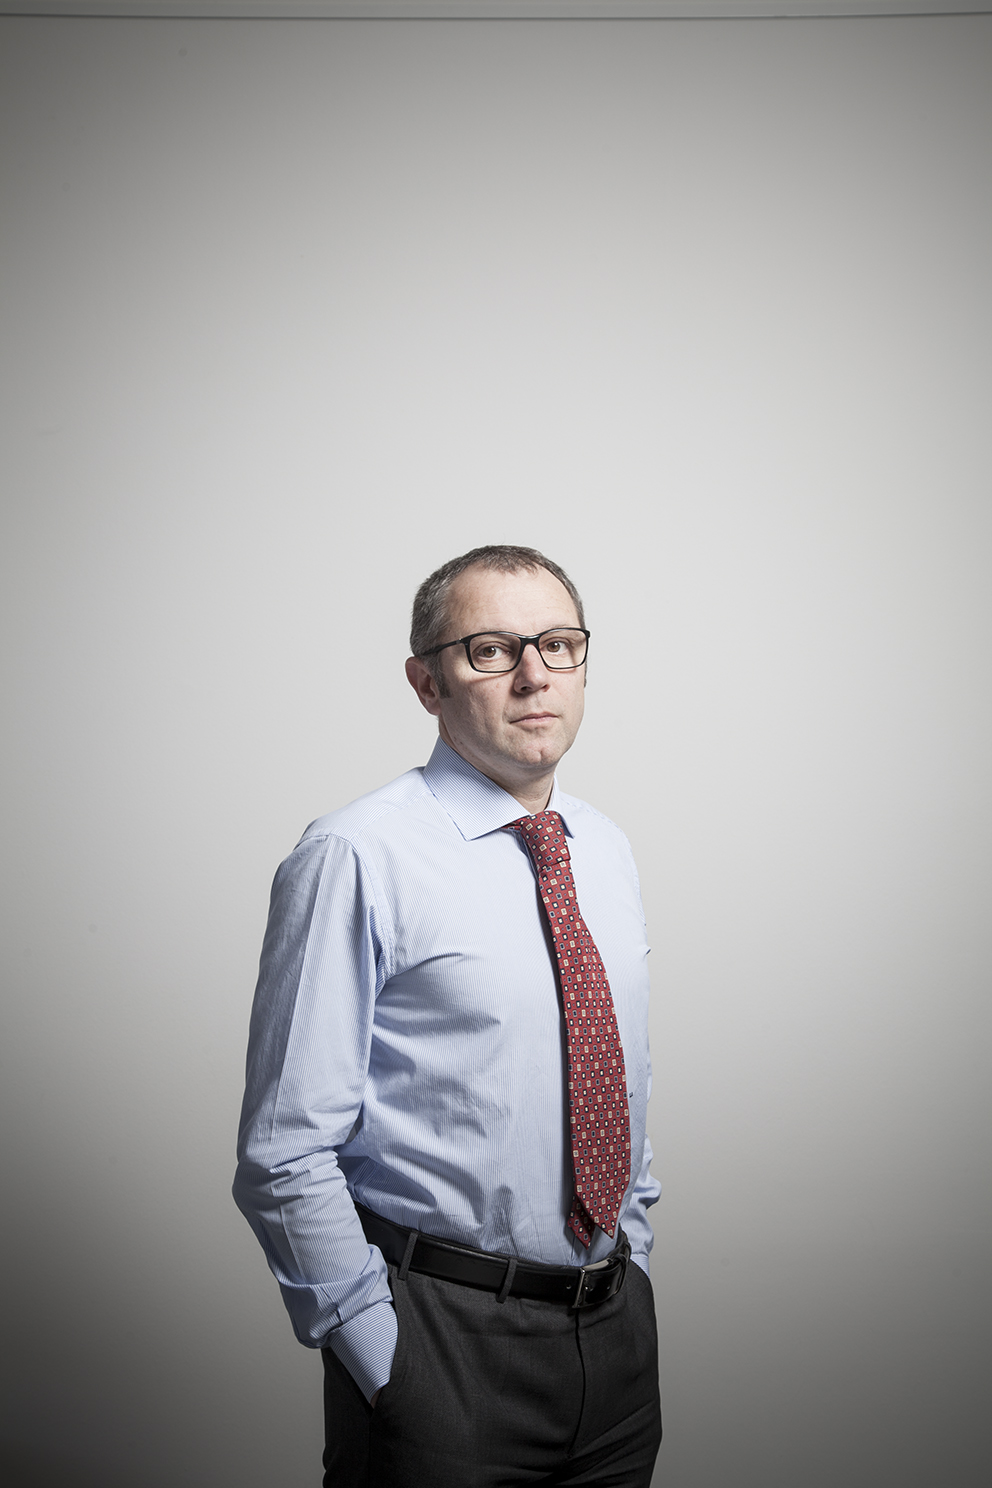 Stefano Domenicali head of the FIA's Single-Seater Commission